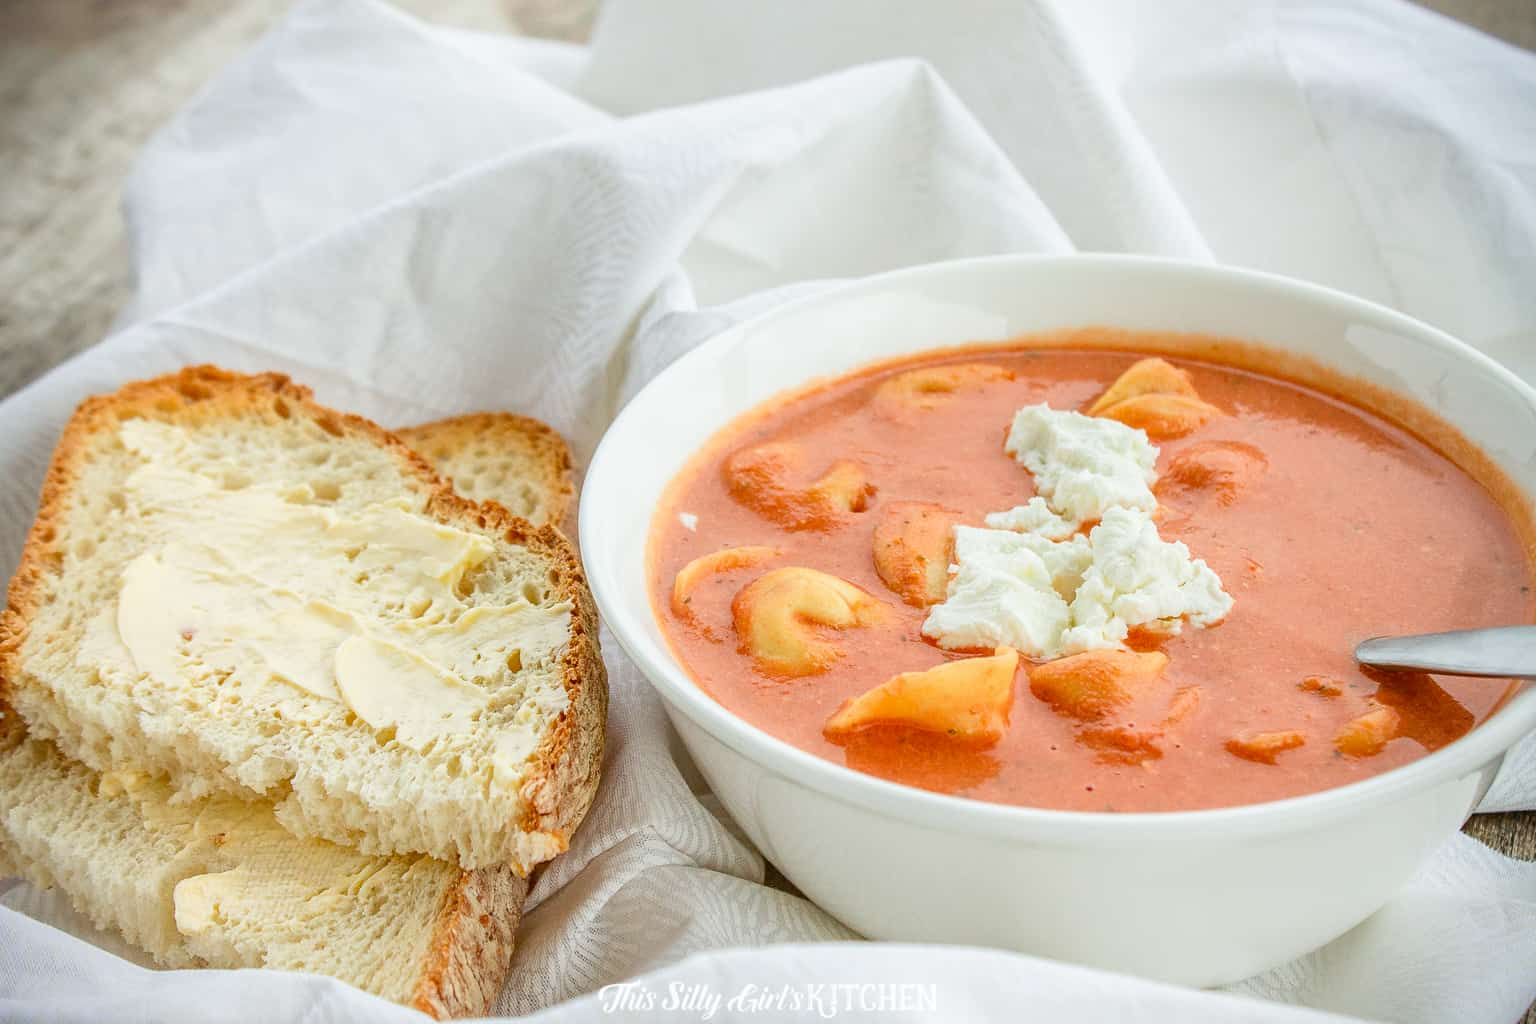 Bowl of soup with spoon in it with bread with butter beside bowl